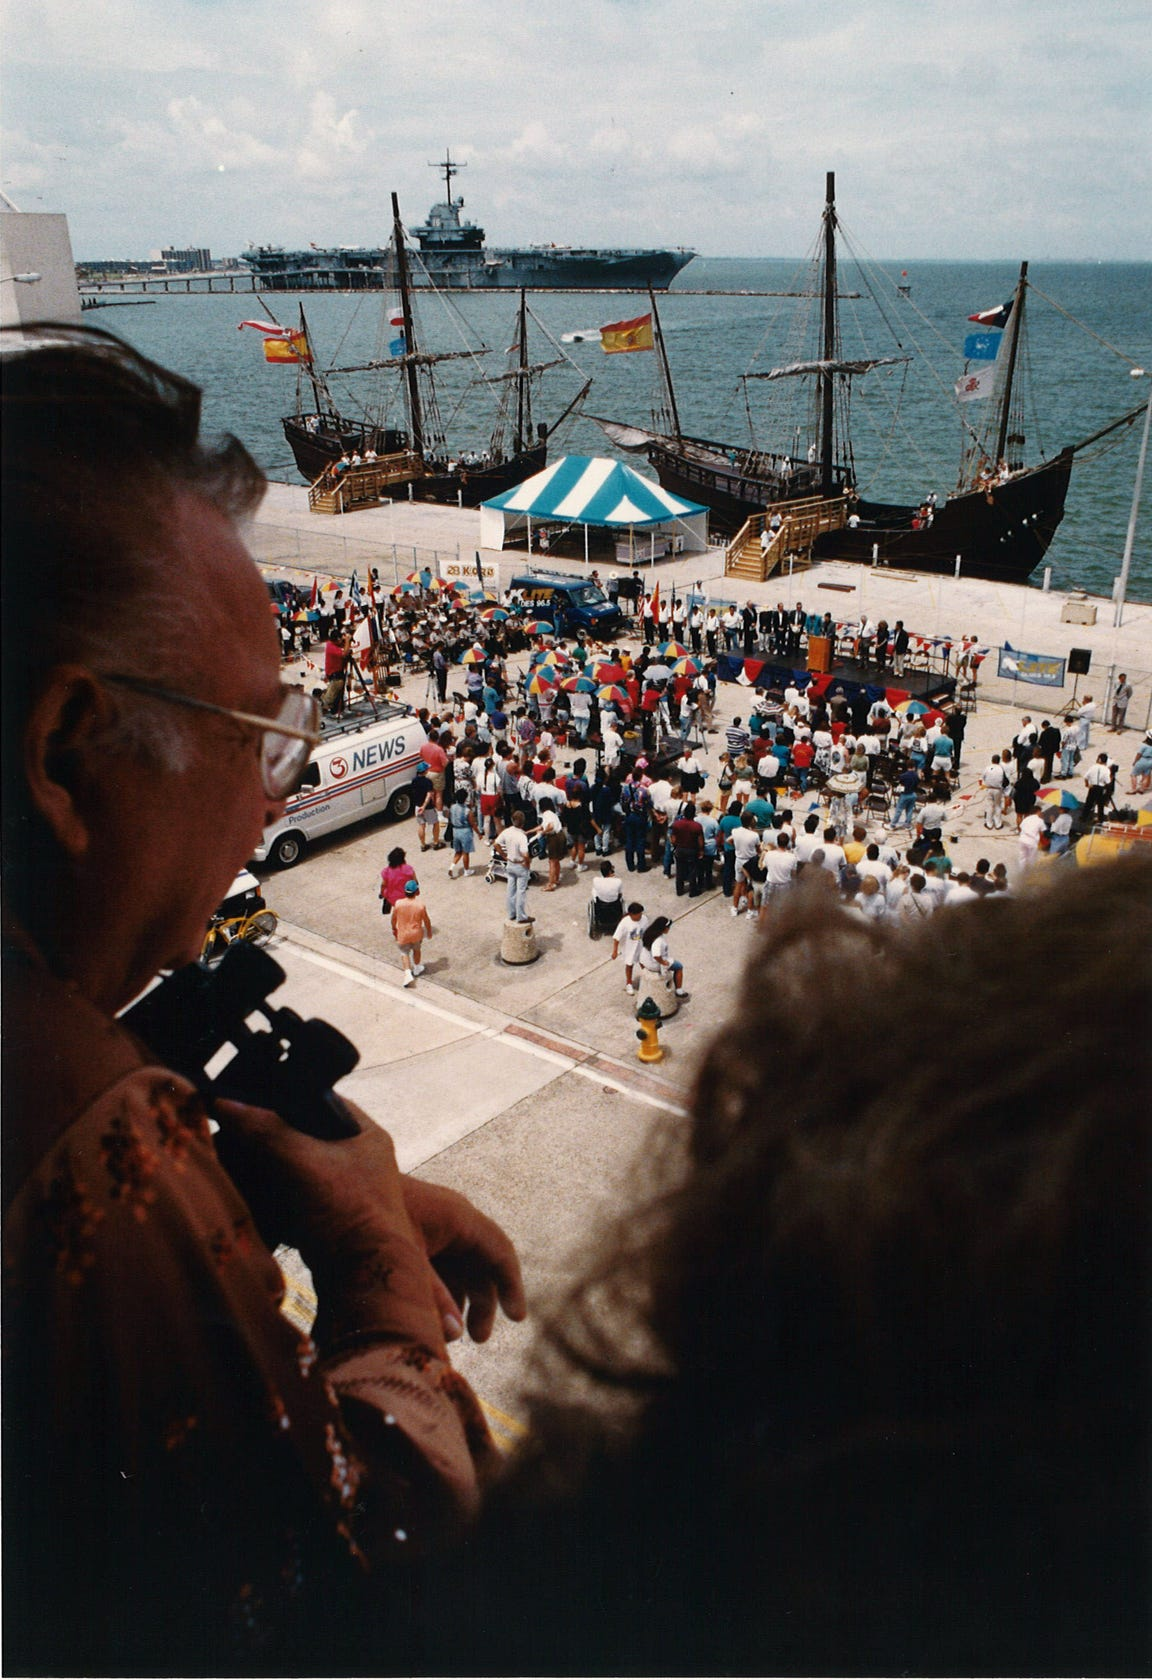 People watch from the second floor of the Bayfront Plaza Auditorium as a dedication ceremony is held at the Corpus Christi Barge Dock for the three Columbus ship replicas on June 12, 1993.